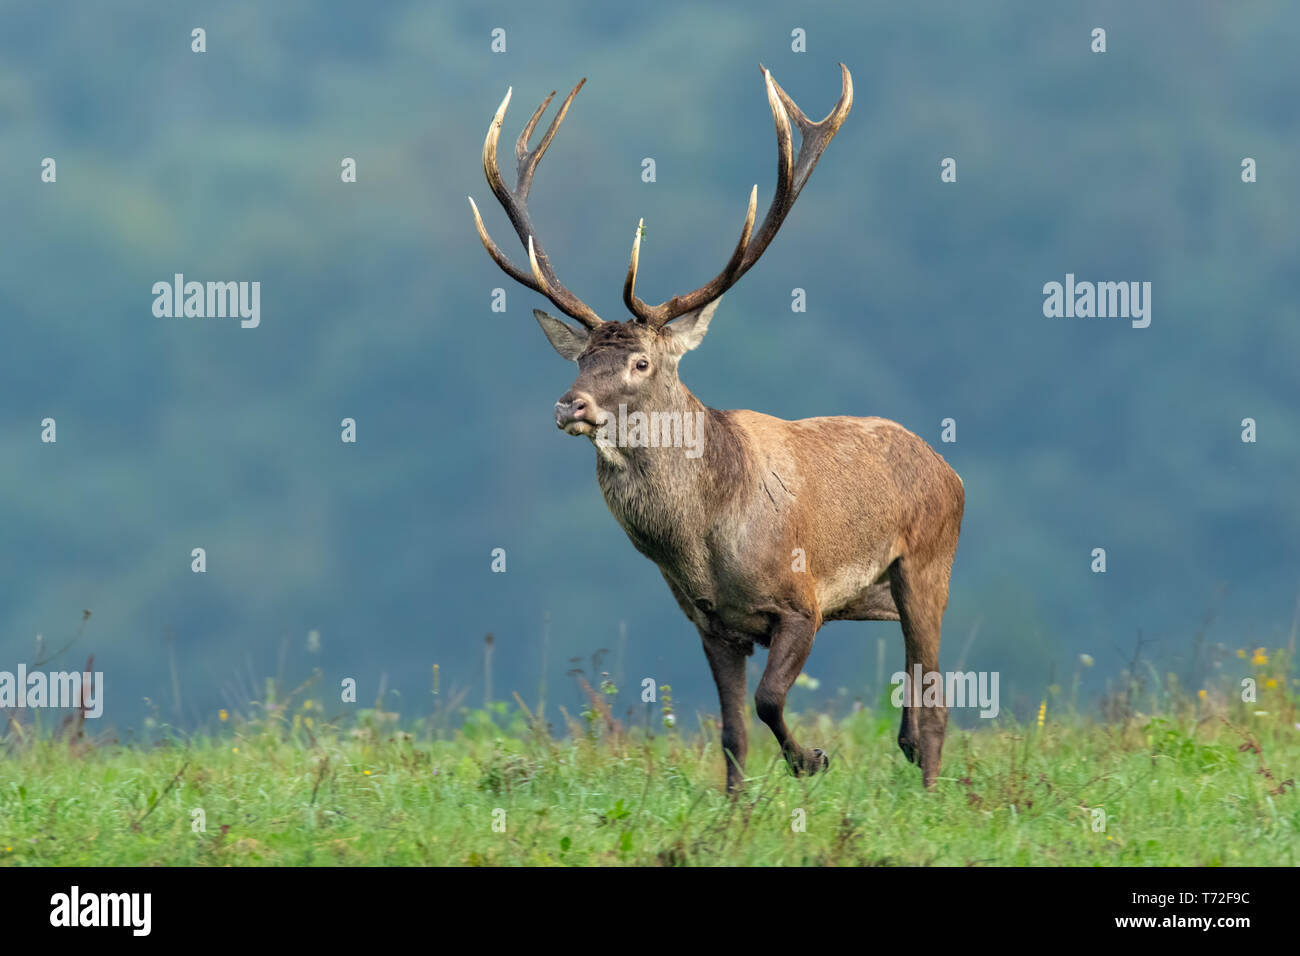 Red deer stag running in nature with short green grass and blurred background - Stock Image